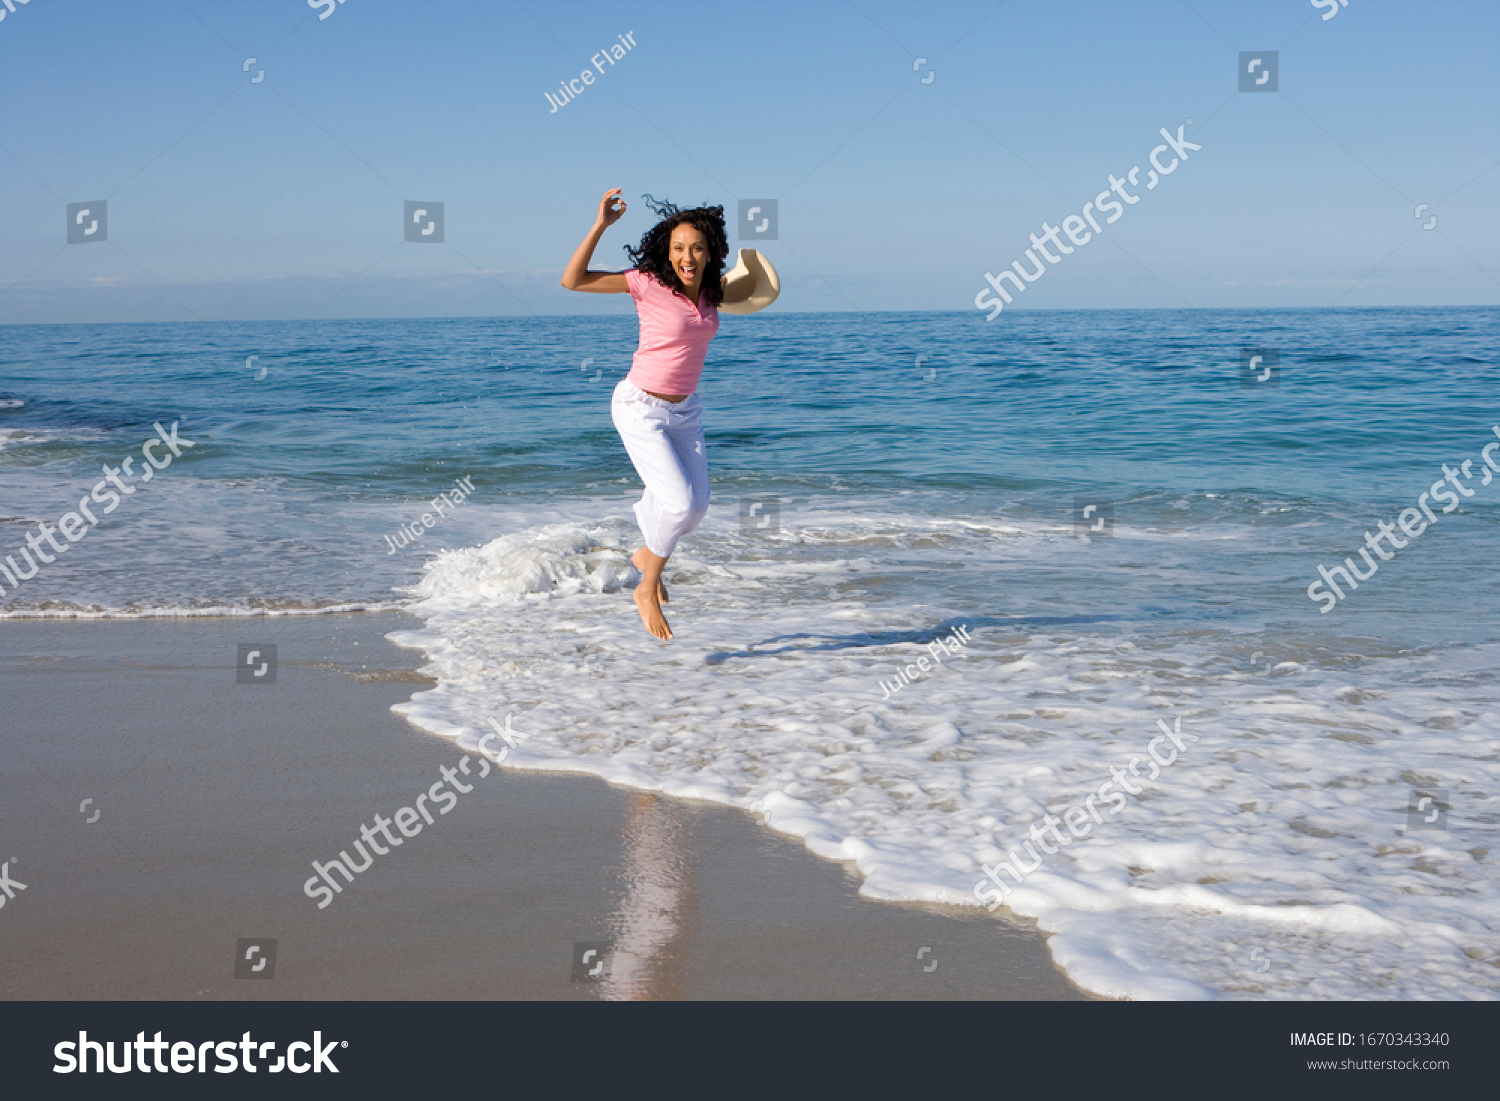 Woman jumping in waves on beach on summer vacation at camera #1670343340